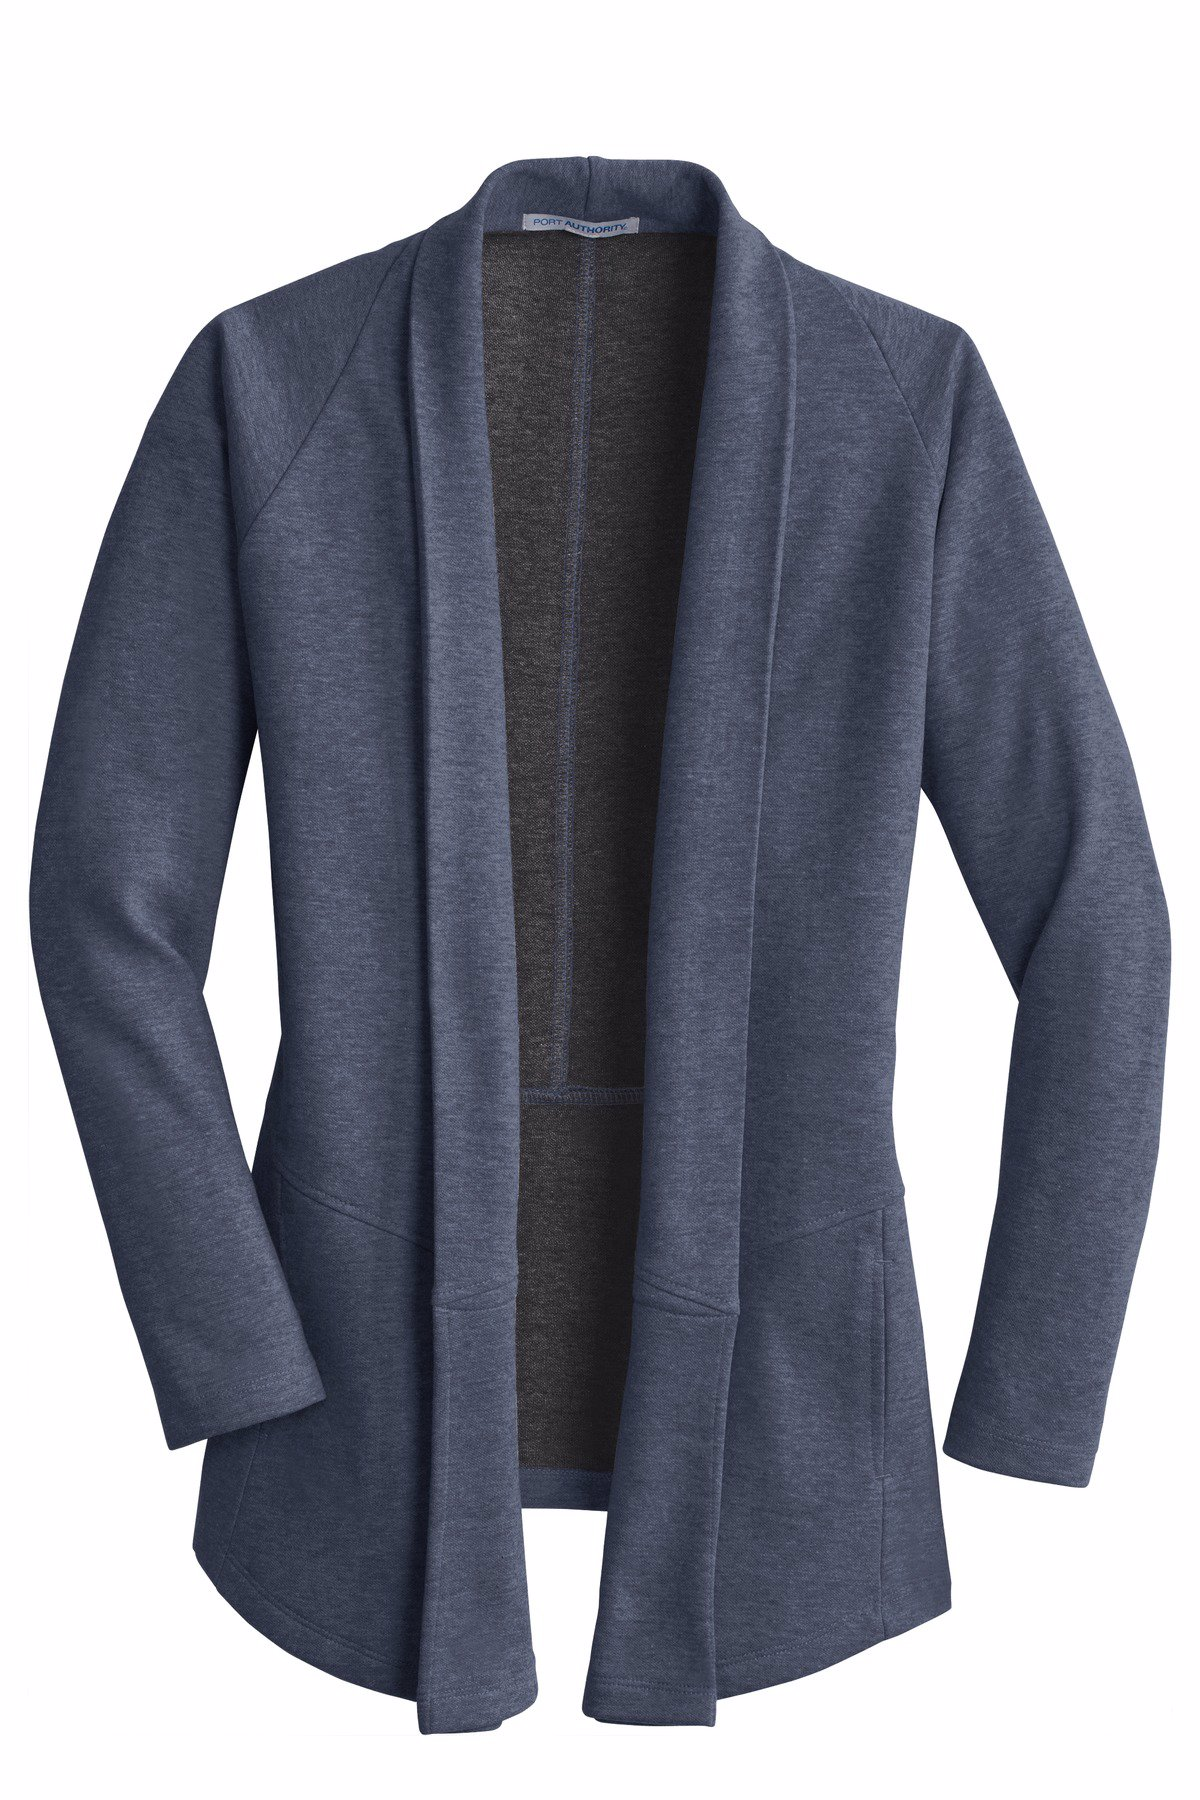 Estate Blue Heather/ Charcoal Heather